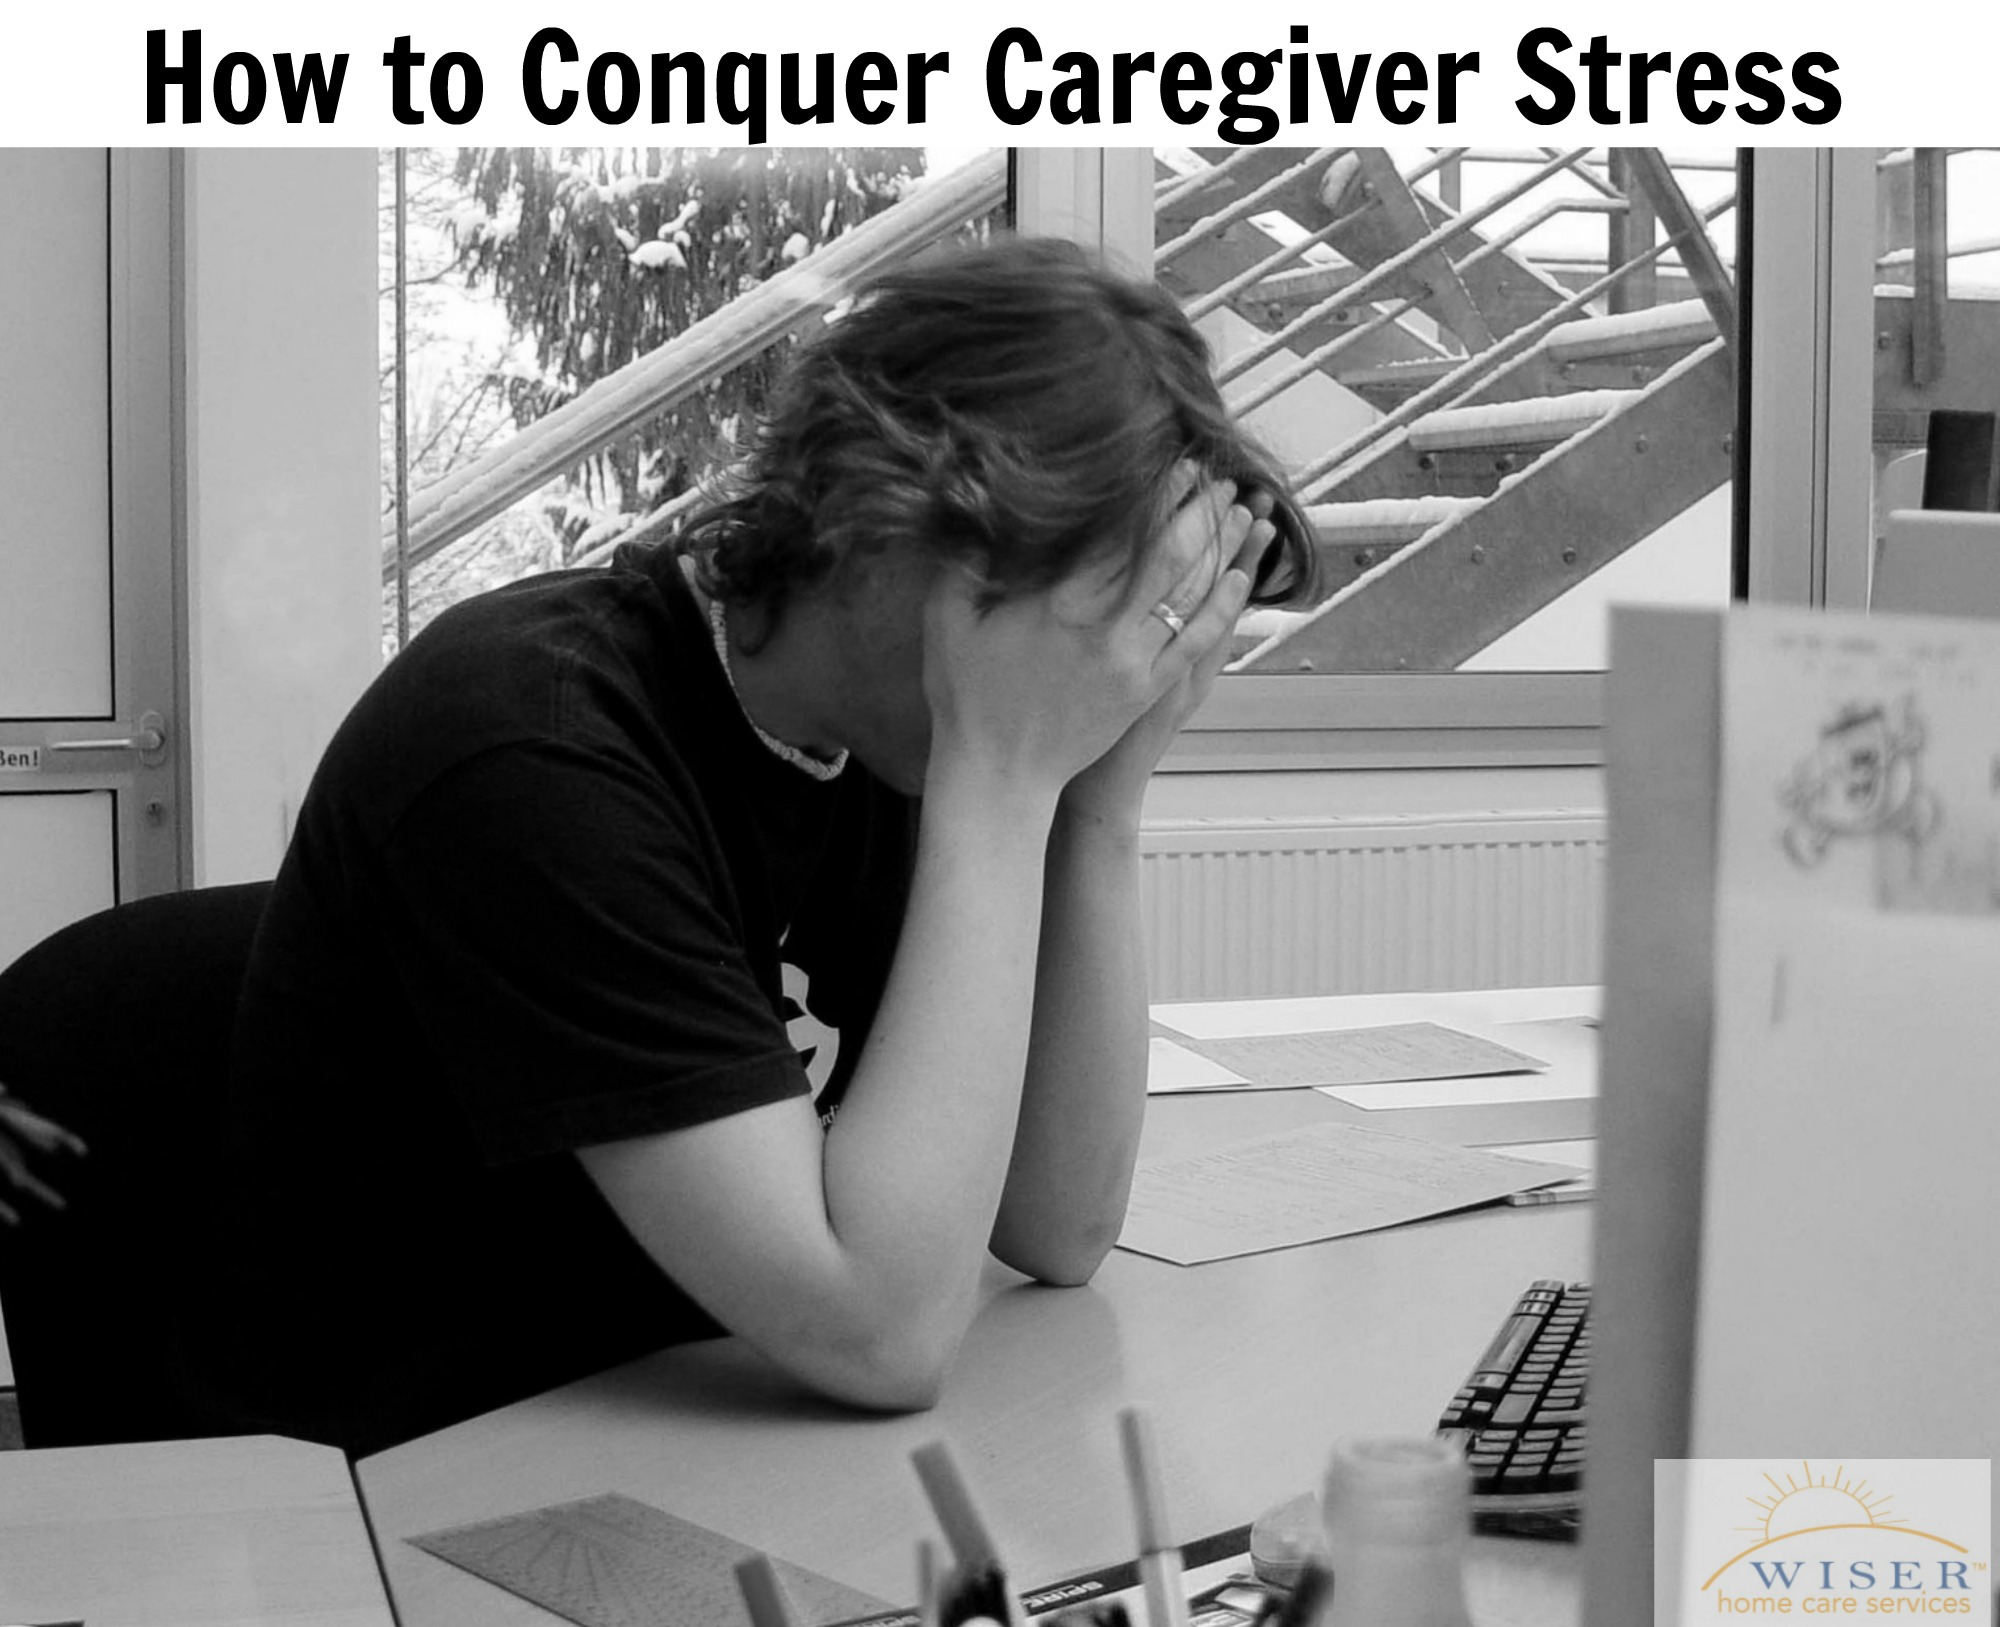 While rewarding, caring for a loved one can be very stressful. Learning how to deal with caregiver stress will allow you to continue providing quality care.